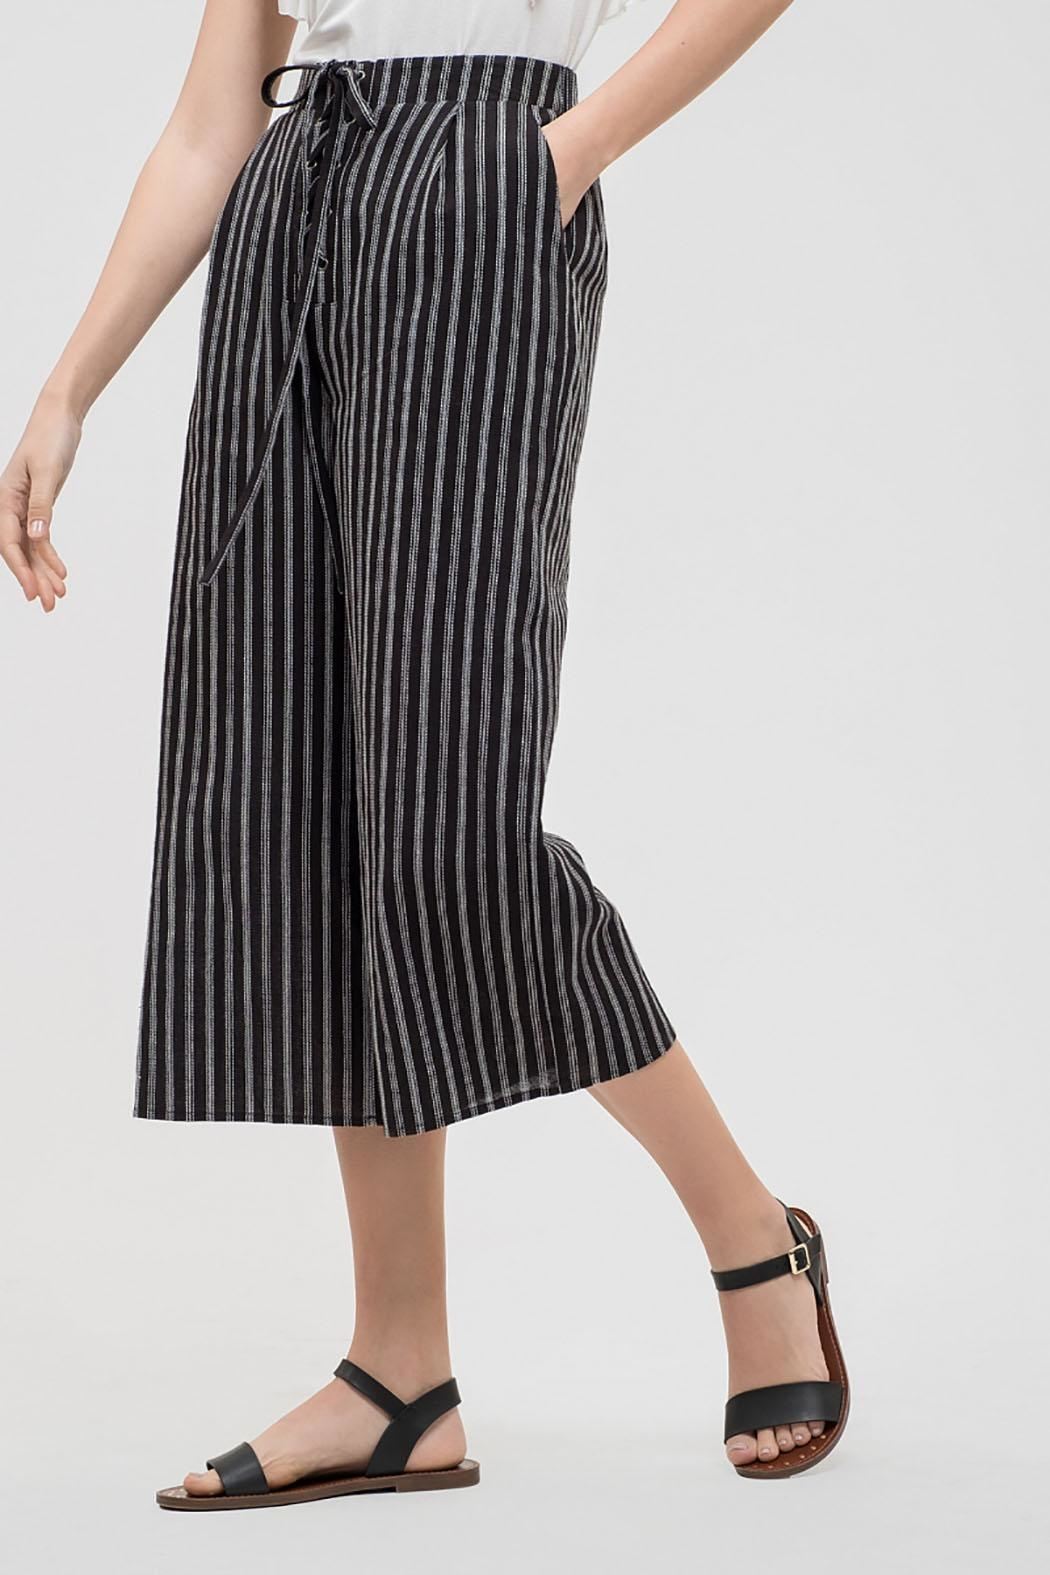 Blu Pepper Striped Drawstring Capris - Side Cropped Image